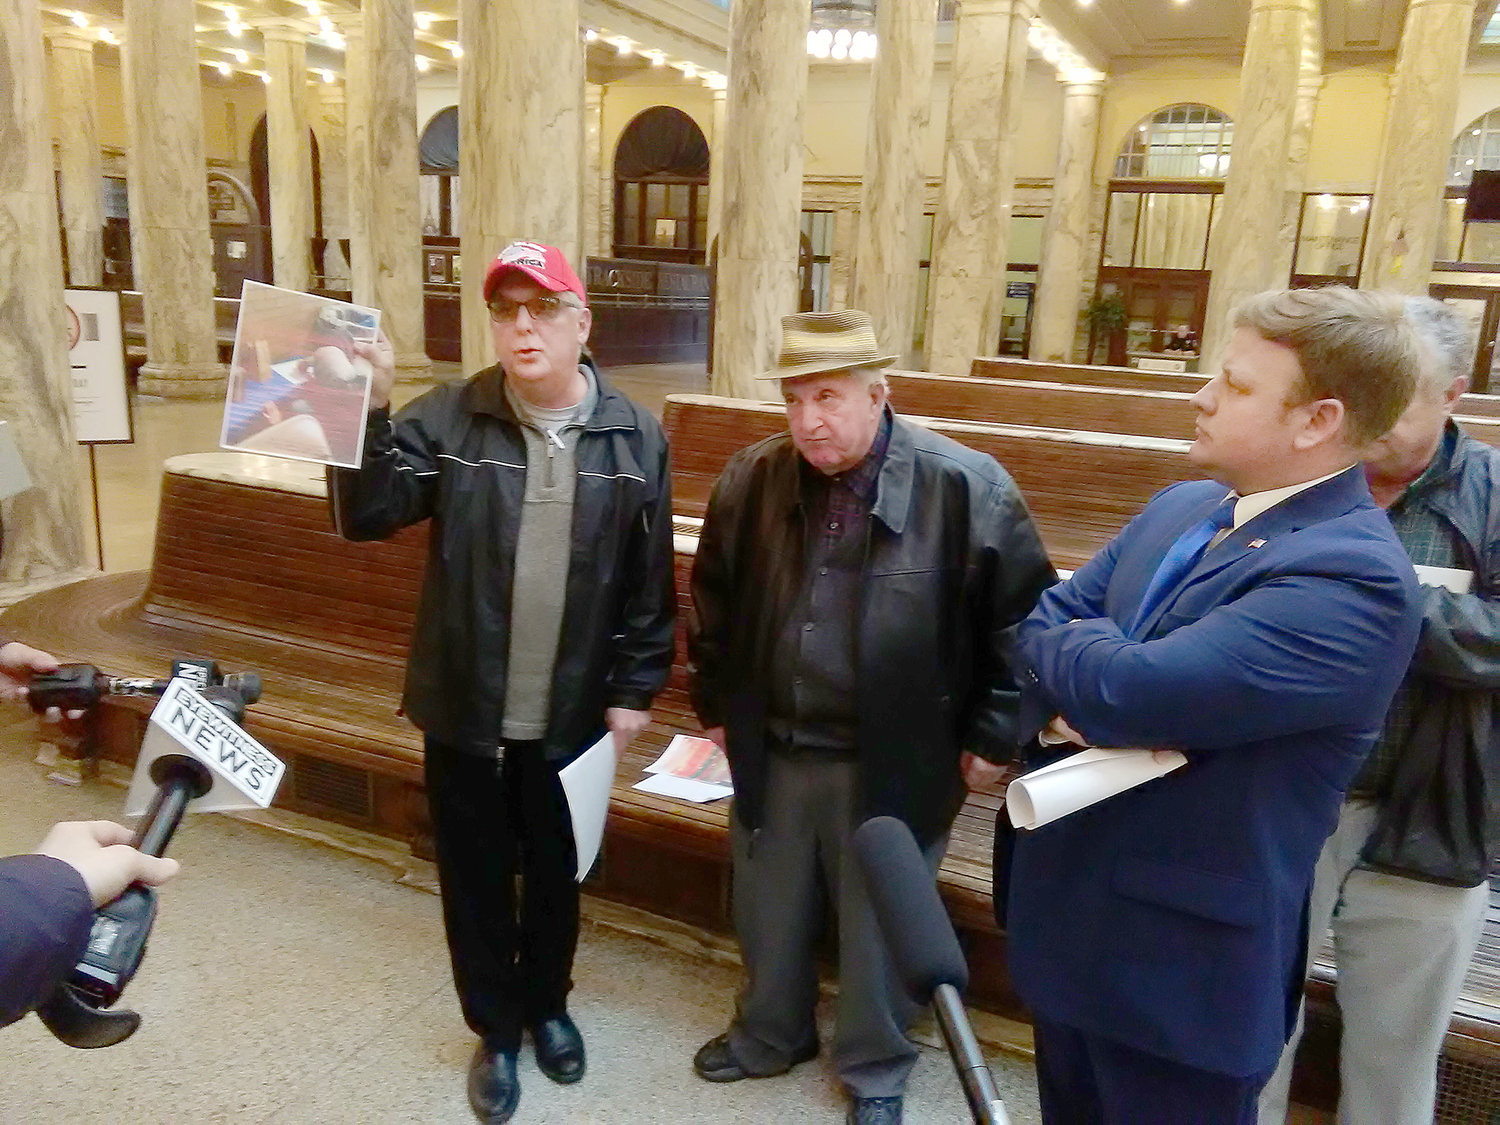 VOTING AT ISSUE — Jim Zecca of Utica shows a photo of voters filling out a provisional ballot at a poling place in November, while Lou Poccia, center, who was a poll watcher, and Oneida County executive Republican candidate David Gordon, right, look on at Union Station in Utica Monday.